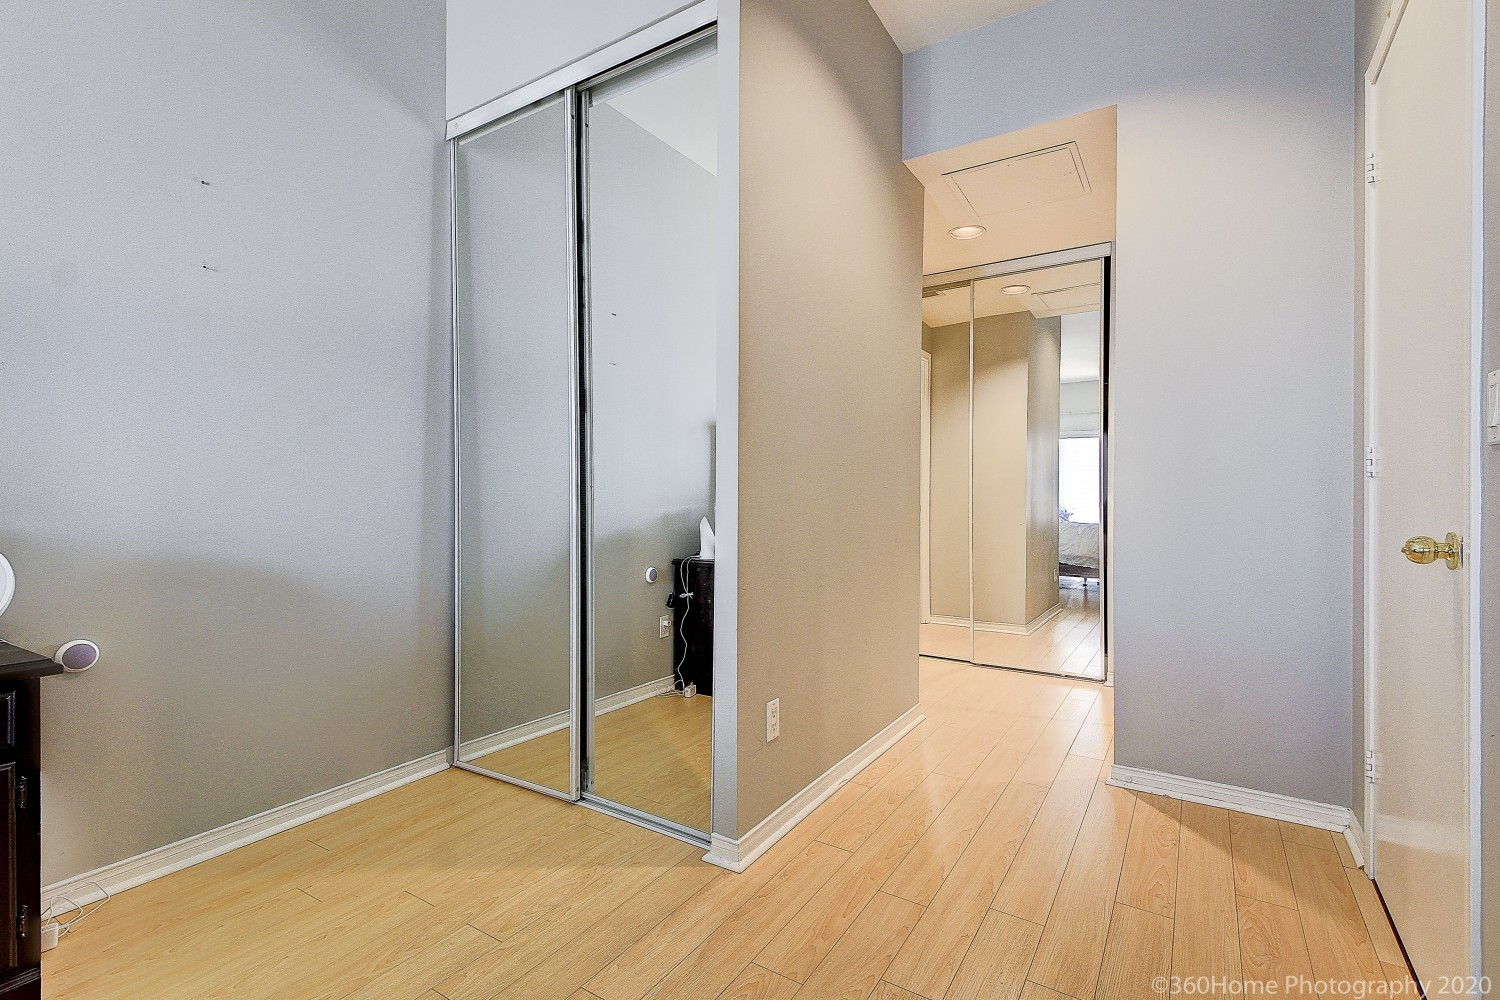 Light brown laminate floors and closet with mirror doors.